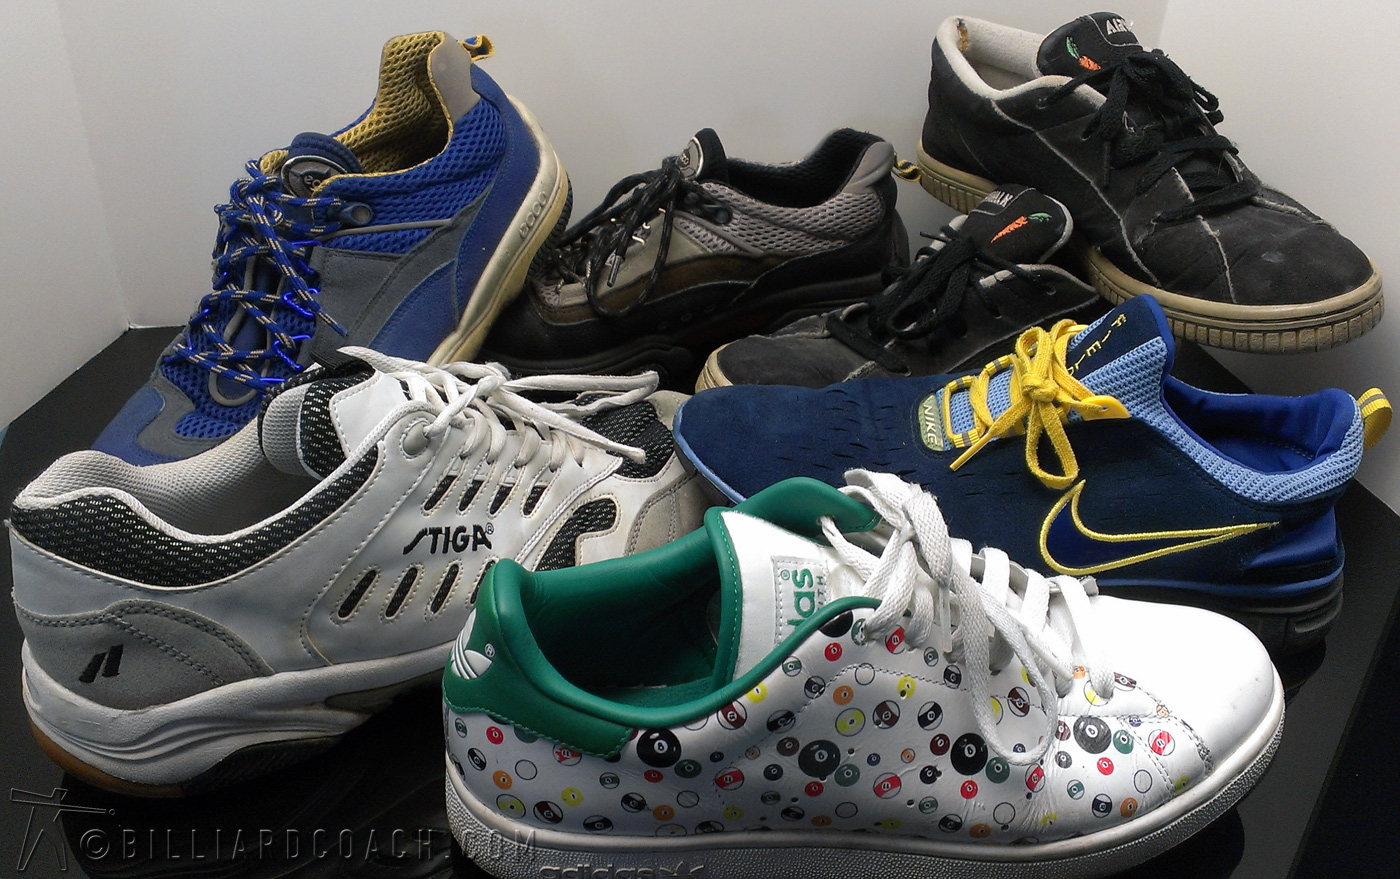 From Left to Right and Back to Front- 2 pair ECCO sailing shoes, Classic Airwalks, Stiga, Nike Free, Adidas.